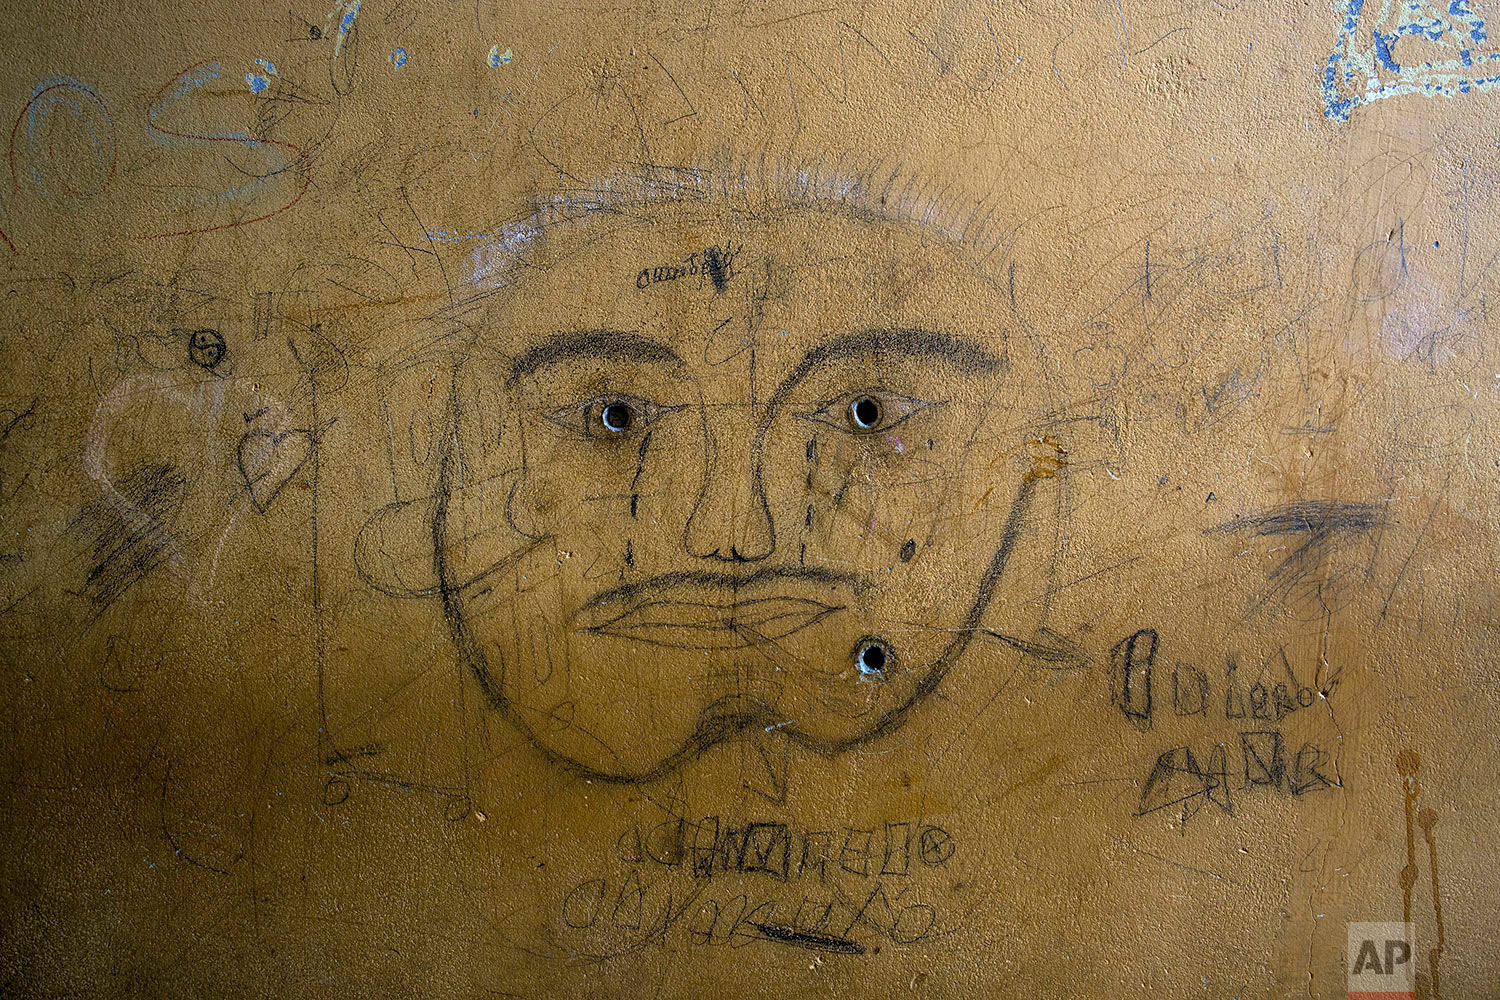 """In this Jan. 12, 2018 photo, writings and a drawing cover the wall of the carpentry workshop at a prison where inmates are building chairs that will be used by indigenous leaders during events with Pope Francis in Puerto Maldonado, Madre de Dios province, Peru. """"We are paying for the bad we did,"""" said Sergio Curay, 48, who is serving nine years for aggravated robbery. """"We hope the pope will forgive us."""" (AP Photo/Rodrigo Abd)